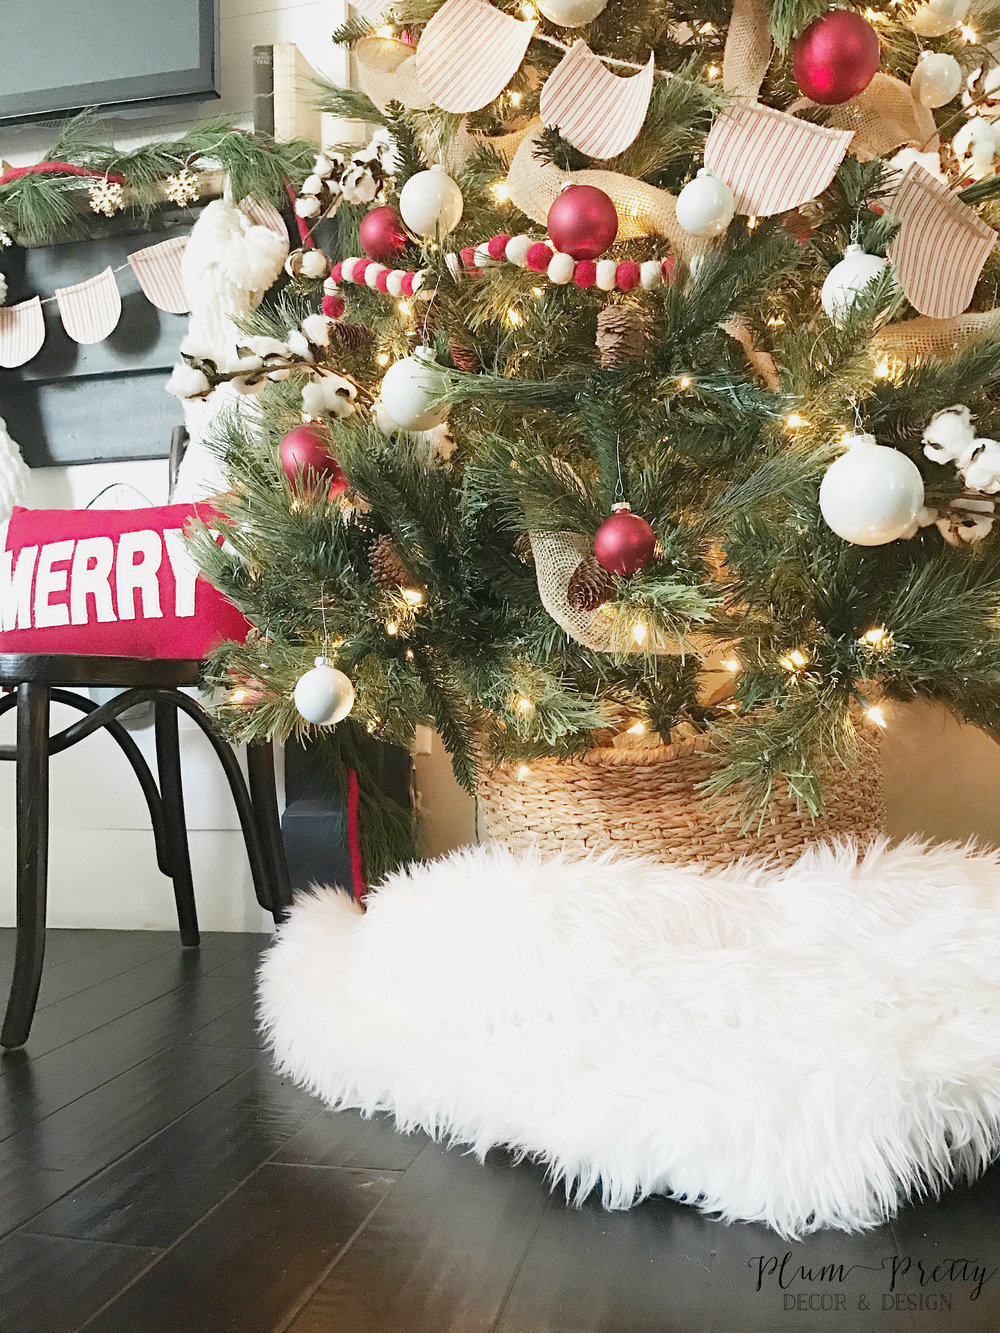 Farmhouse Christmas Bedroom Tour- Faux Fur Tree Skirt- By Kayla Miller or Plum Pretty Decor and Design